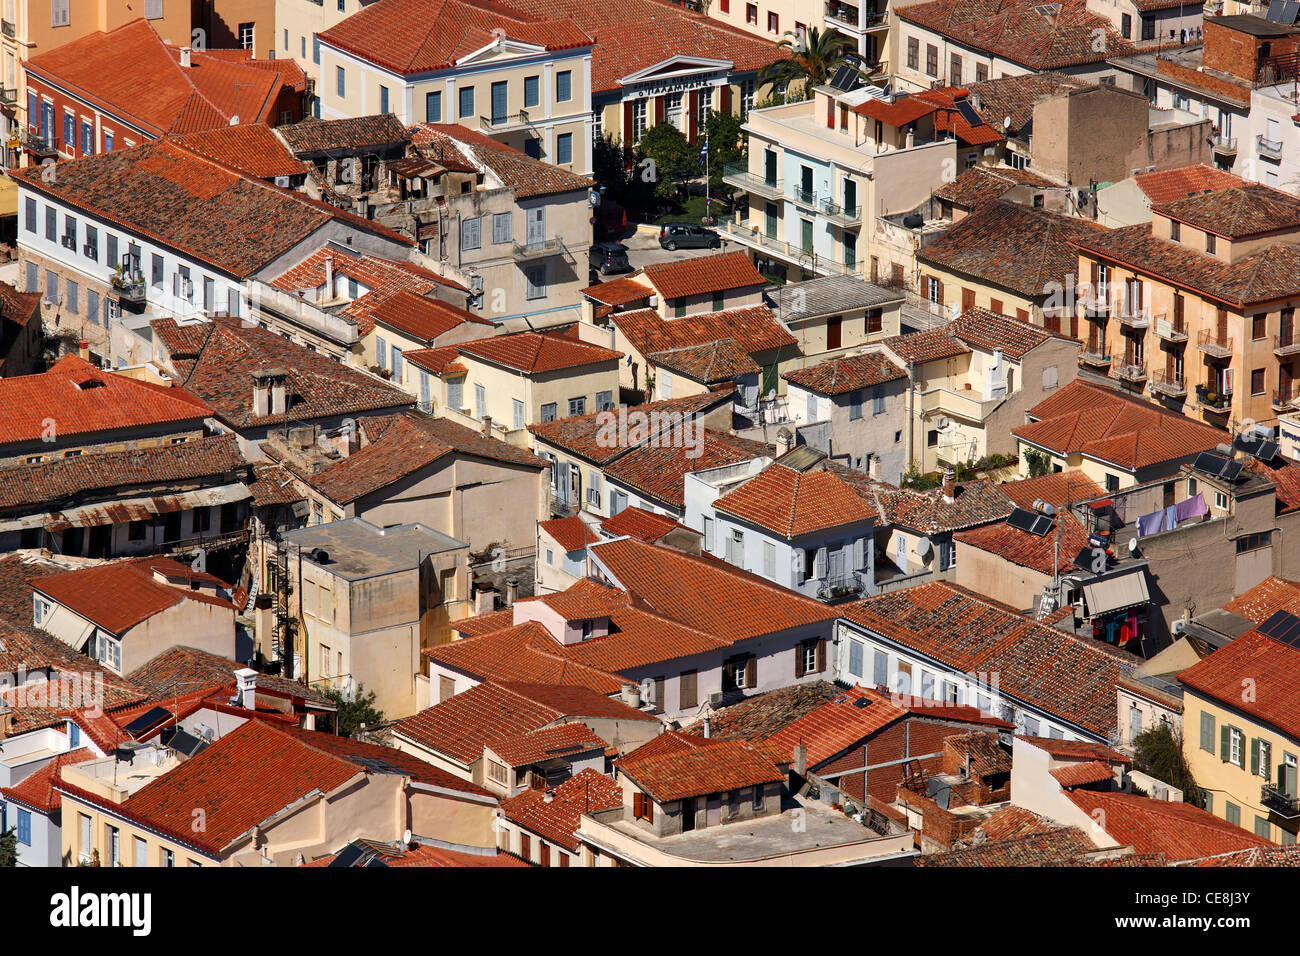 'Detail' from the old part Nafplio town with its characteristic red tile roofs. Photo taken from Palamidi - Stock Image